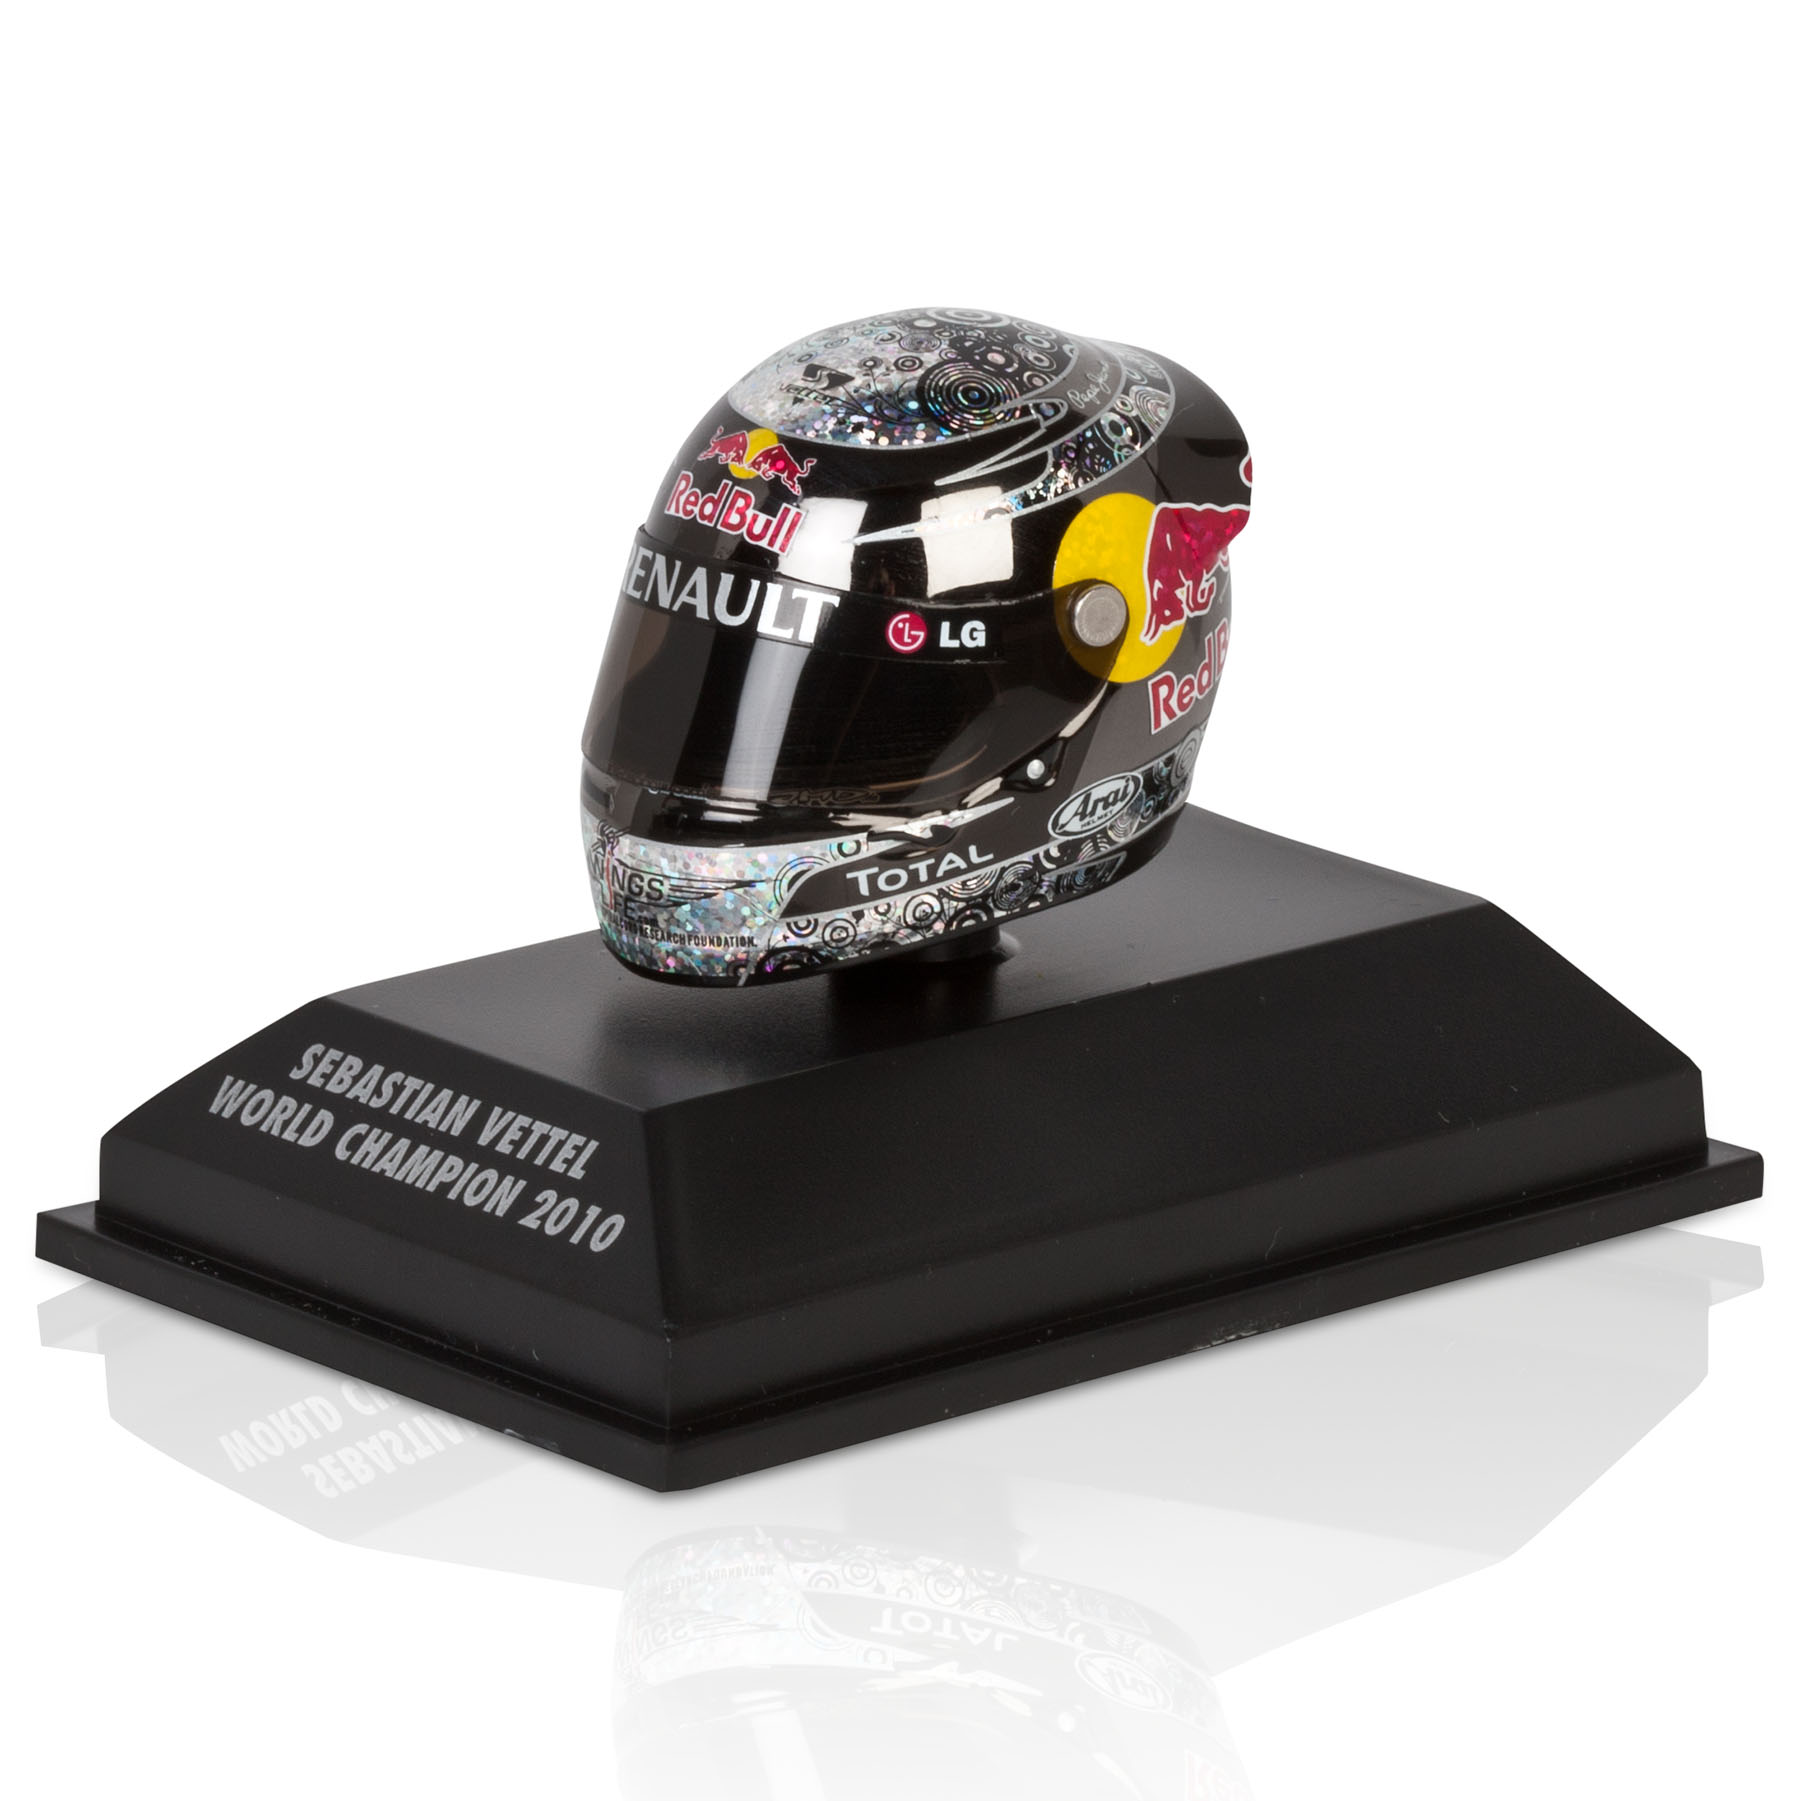 Die Cast Sebastian Vettel - Abu Dhabi 2010 - World Champion 1:8 Scale ArariHelmet Model Code: 381100105